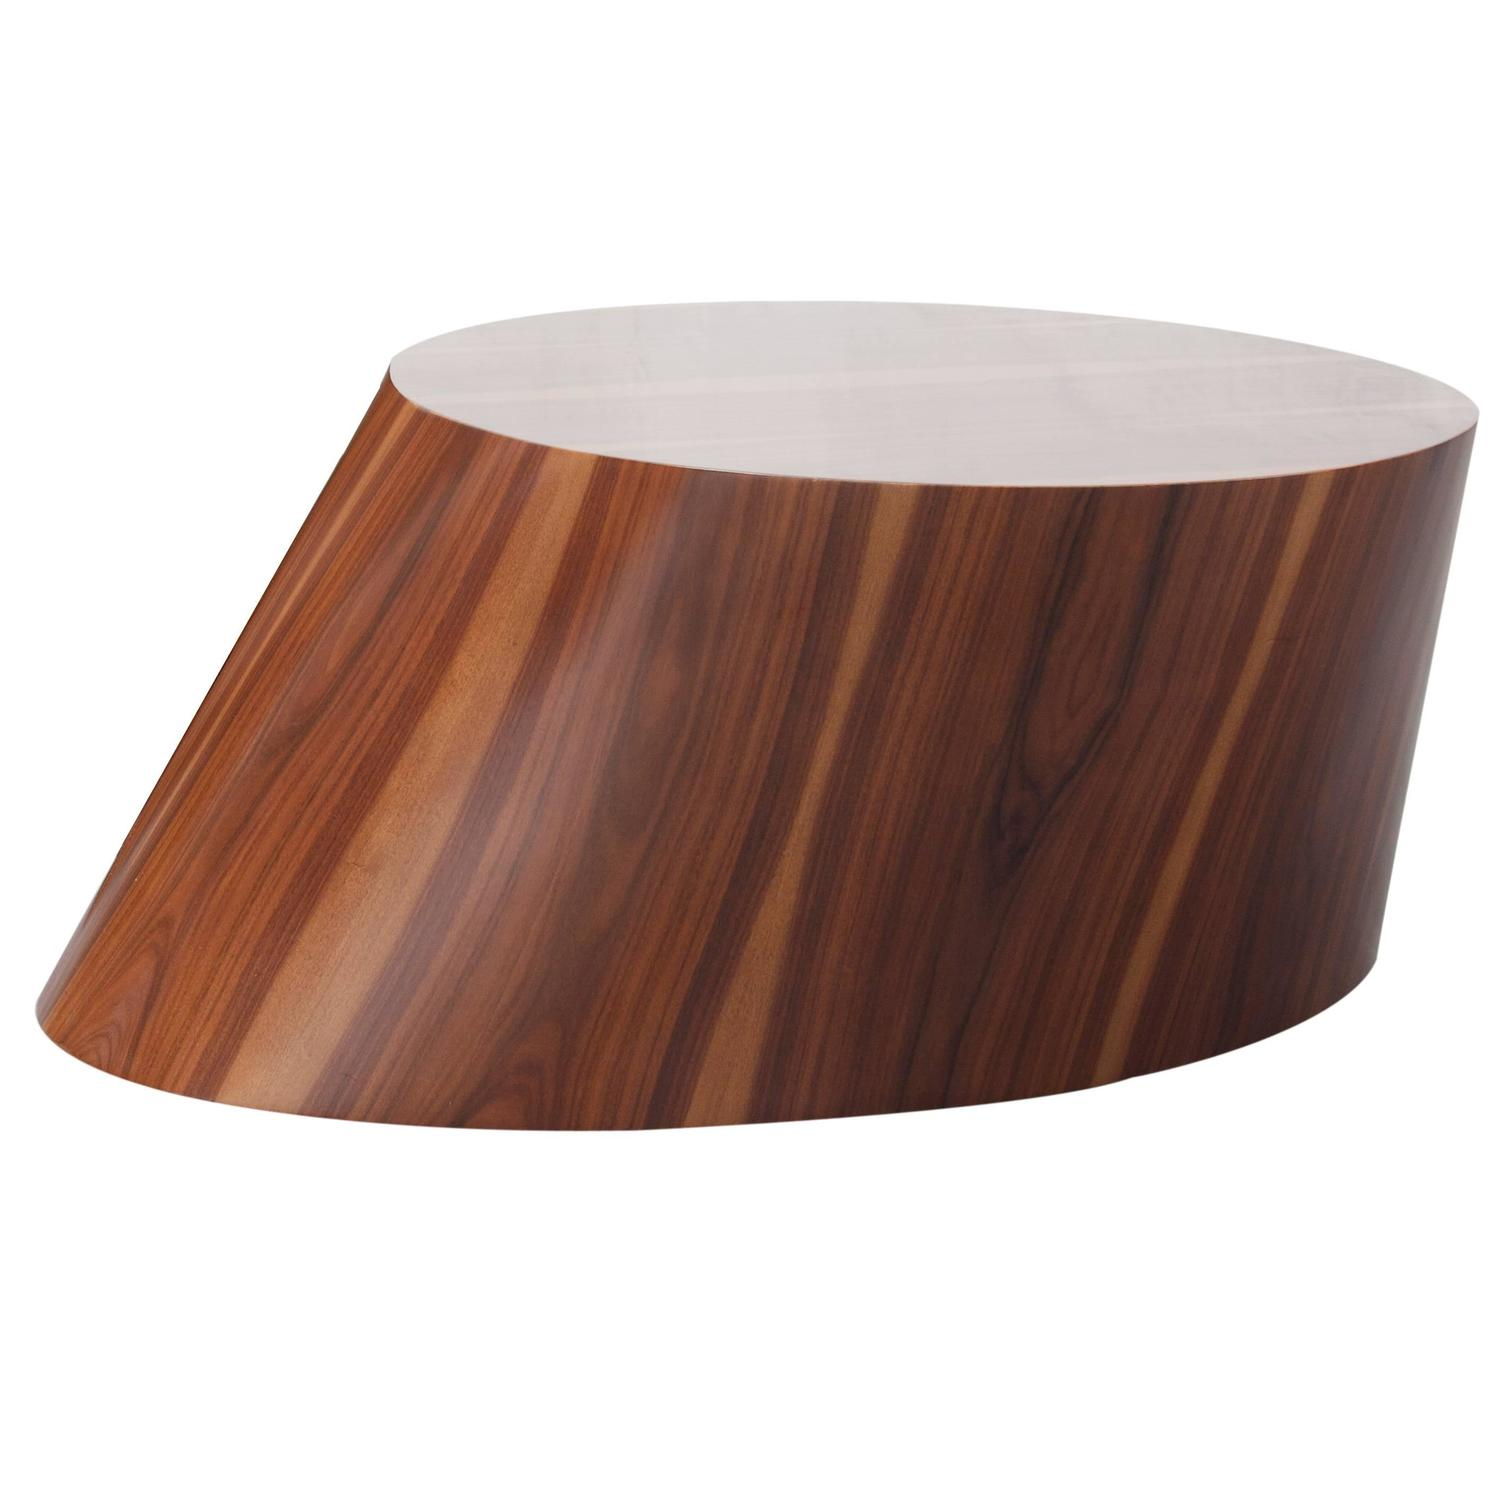 Contemporary Wood Veneered Organic Modern Coffee Table At 1stdibs